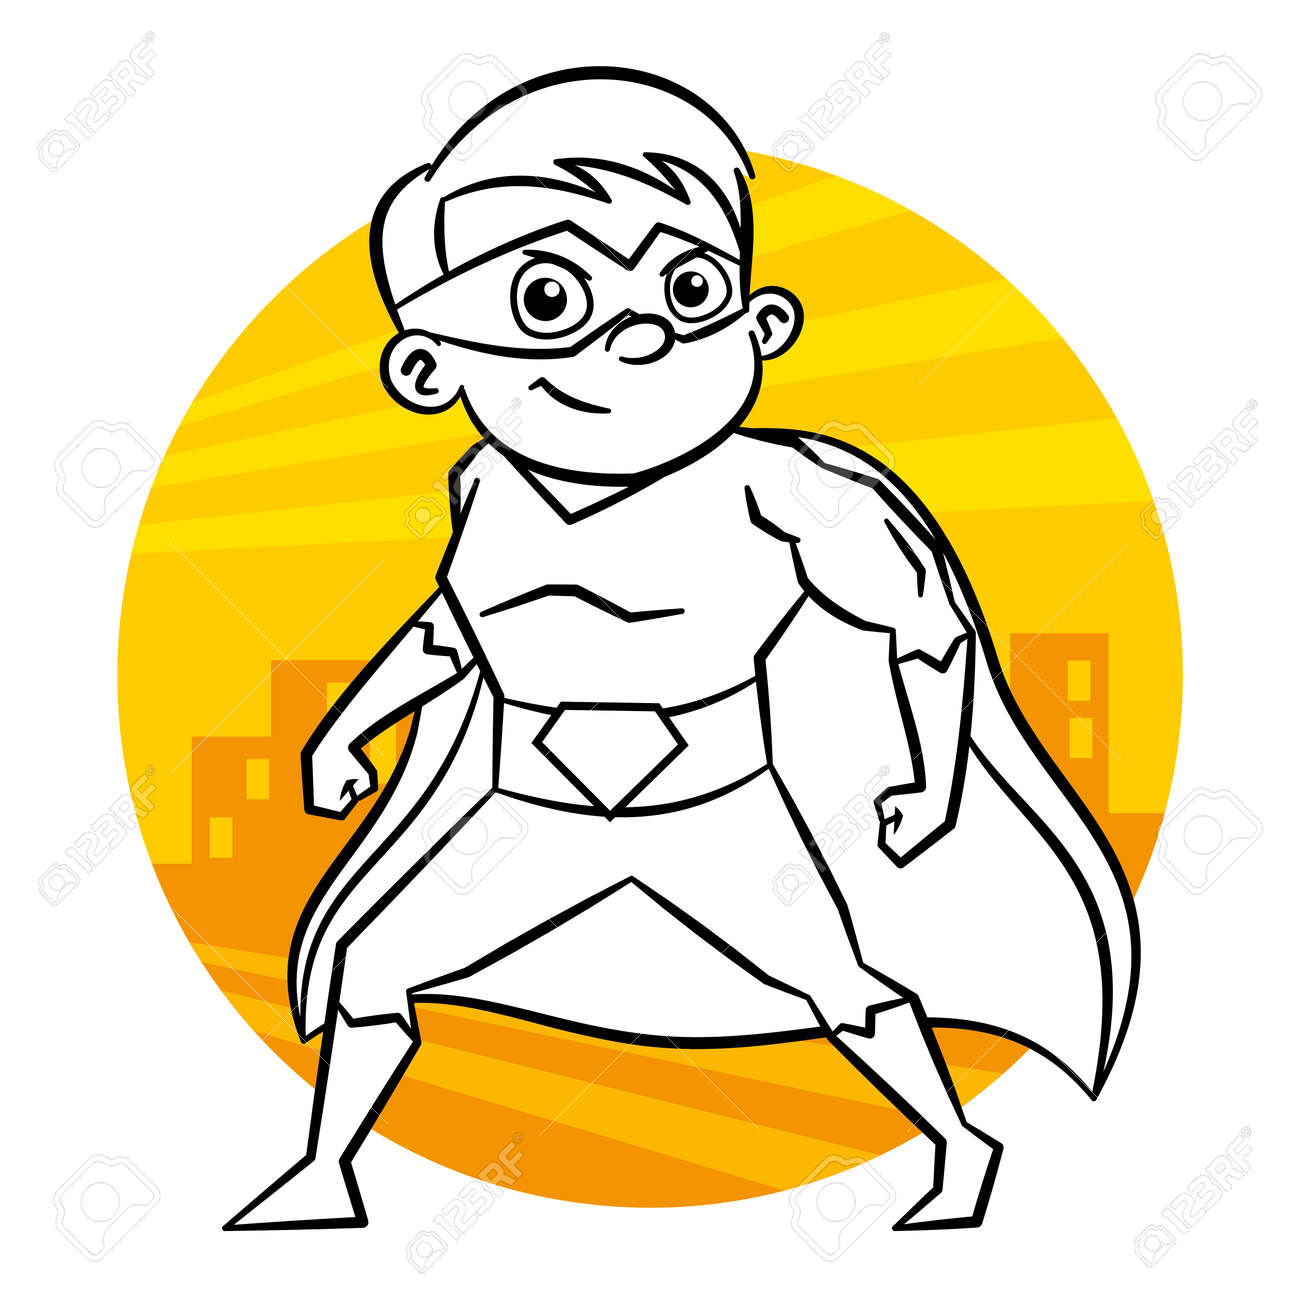 Superhero Coloring Page Stock Photo Picture And Royalty Free Image Image 90302060